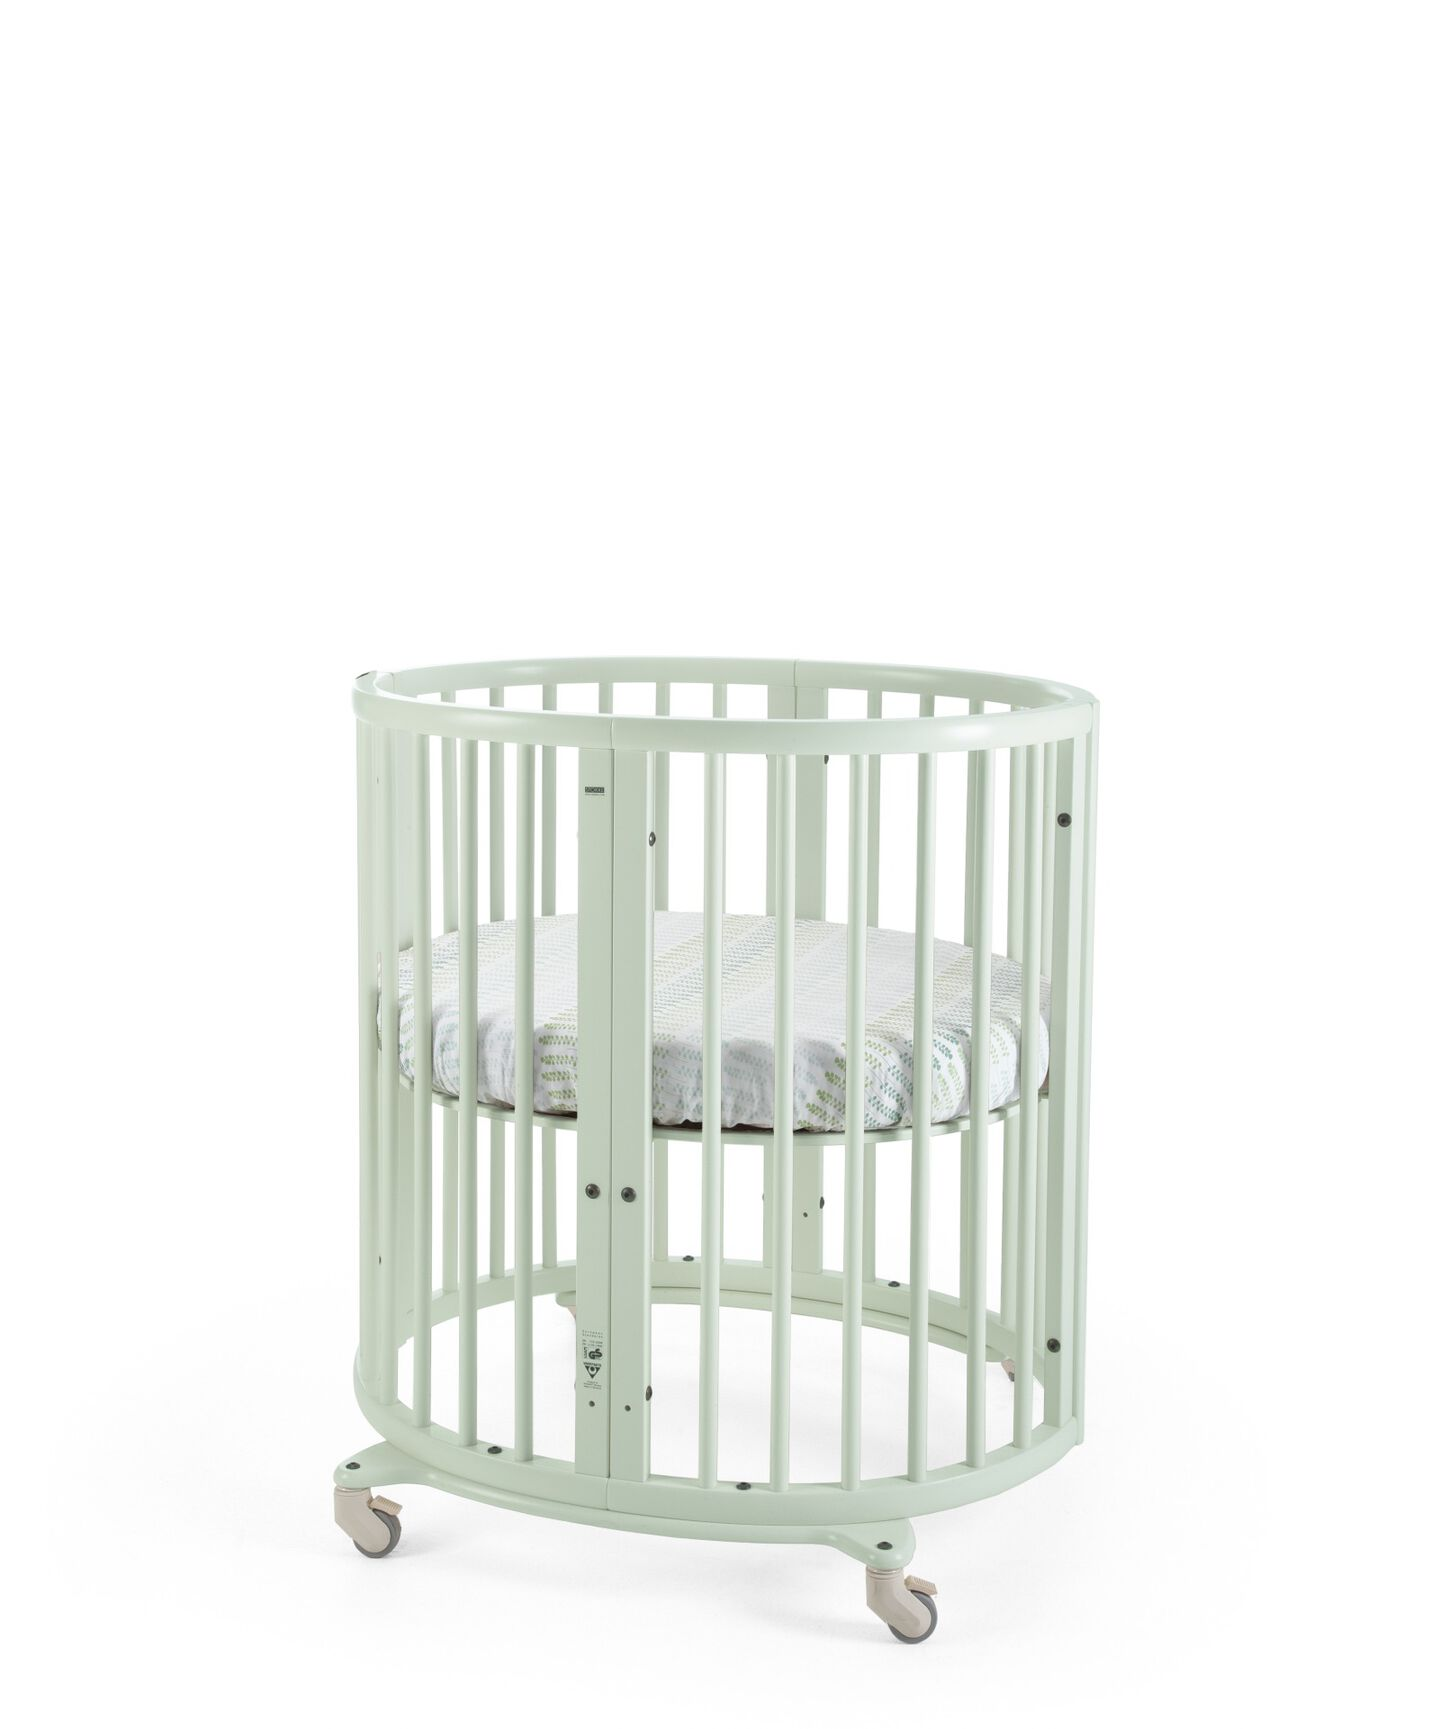 Stokke® Sleepi Mini, Beech Mint. Fitted Sheet, Aqua Straw.